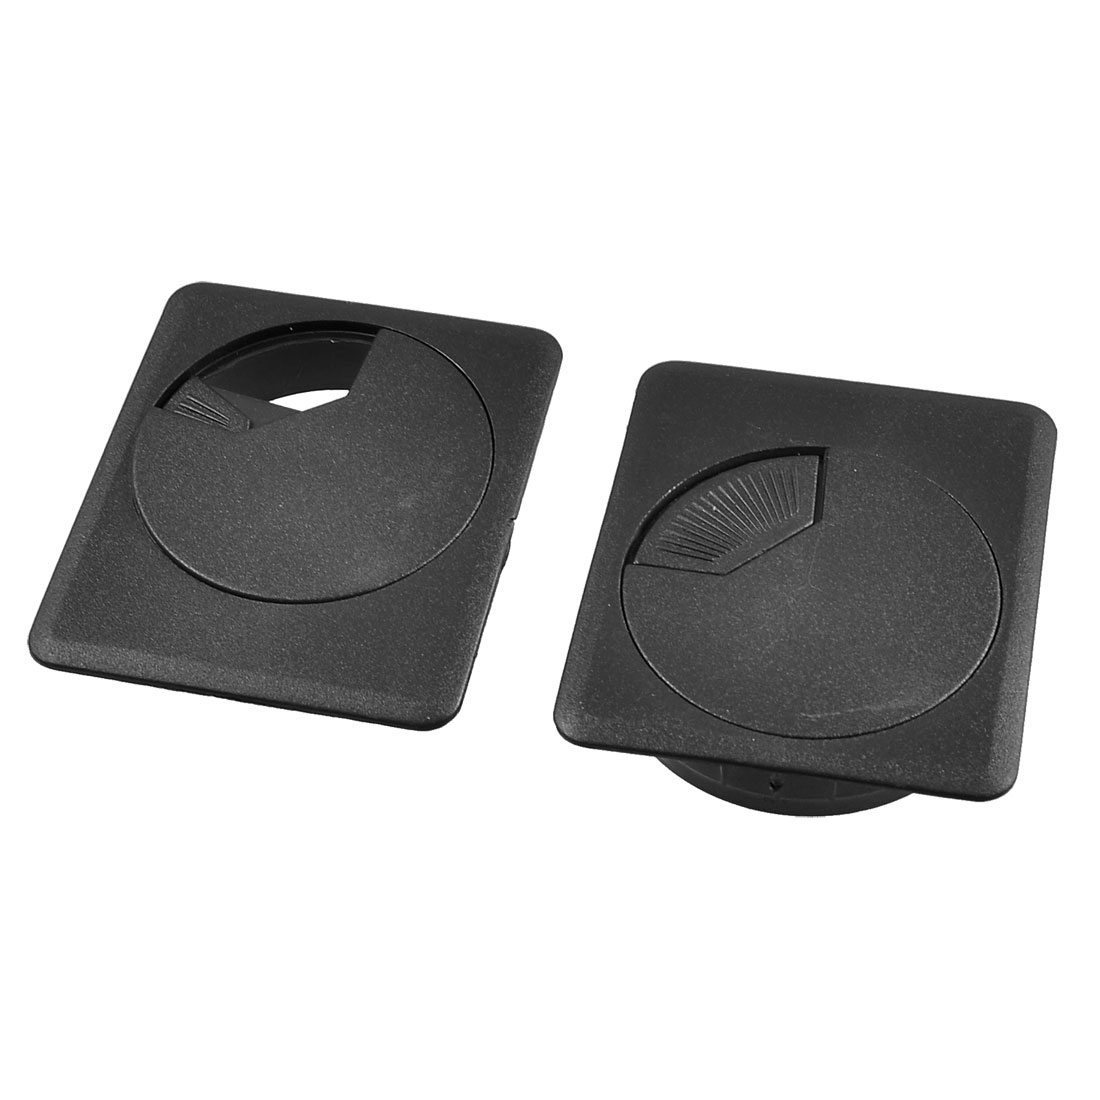 2 Pcs 52mm Plastic Desk Computer Cable Cover Grommet Organizer Shell Black